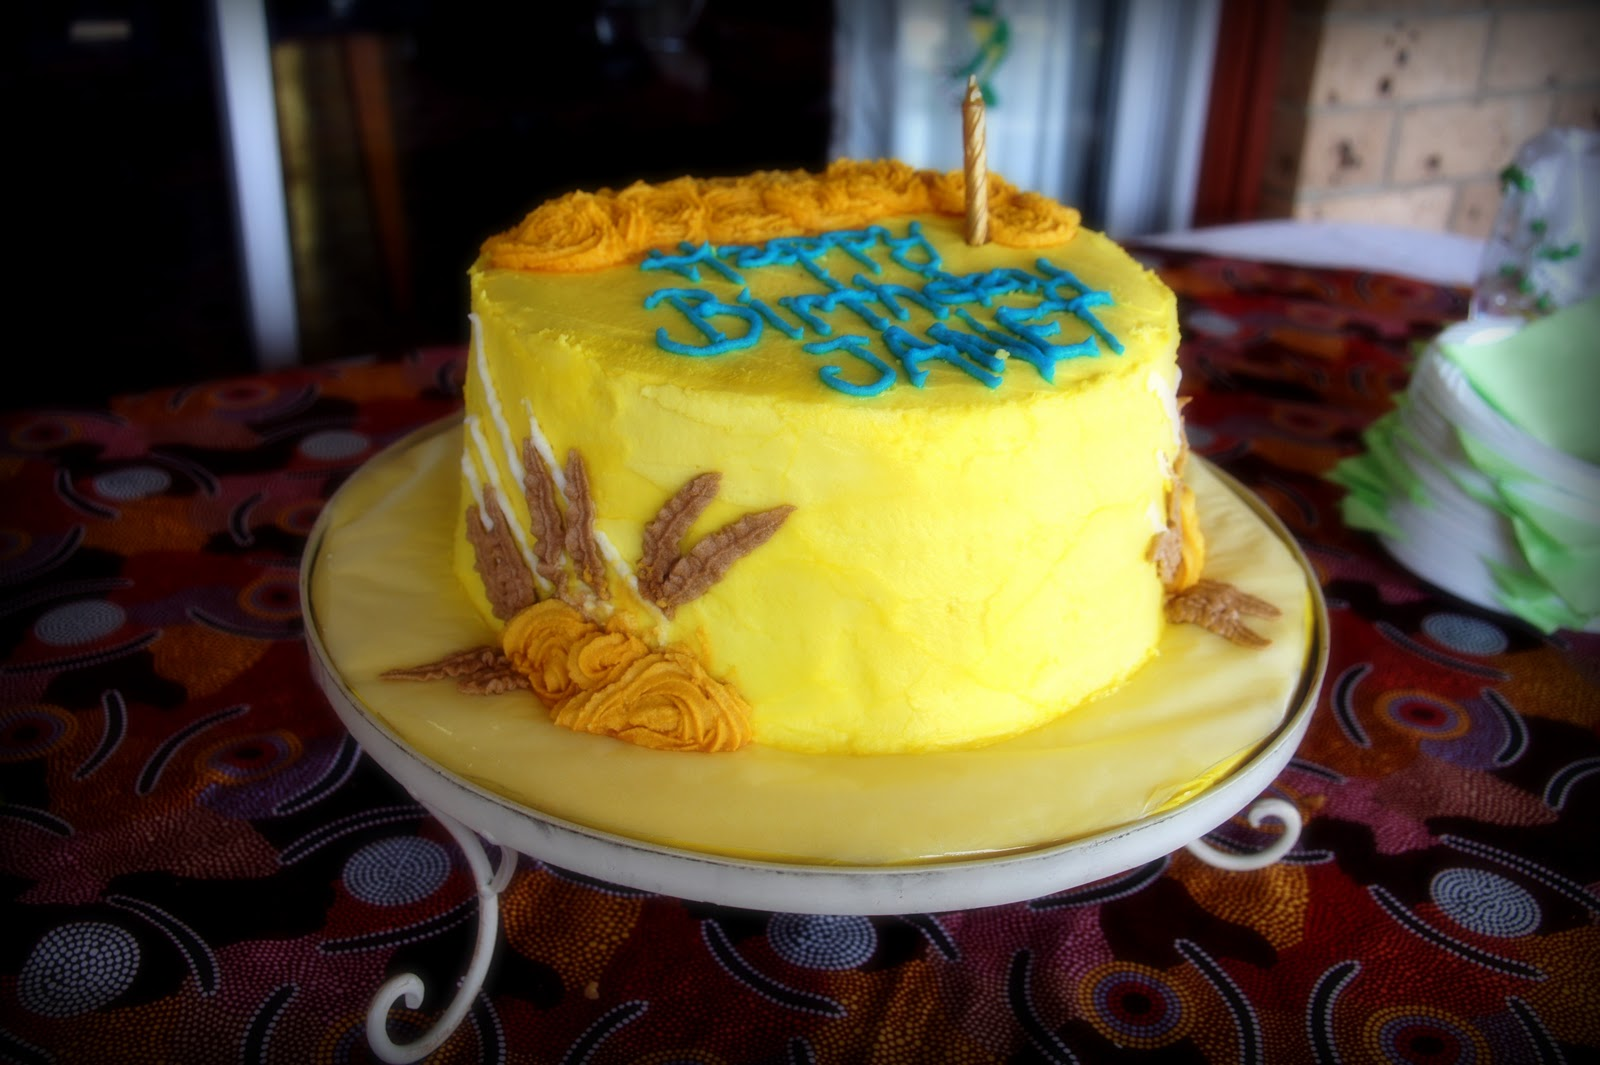 The Chook-minder\'s Quill: The Bush Party and the Cakes